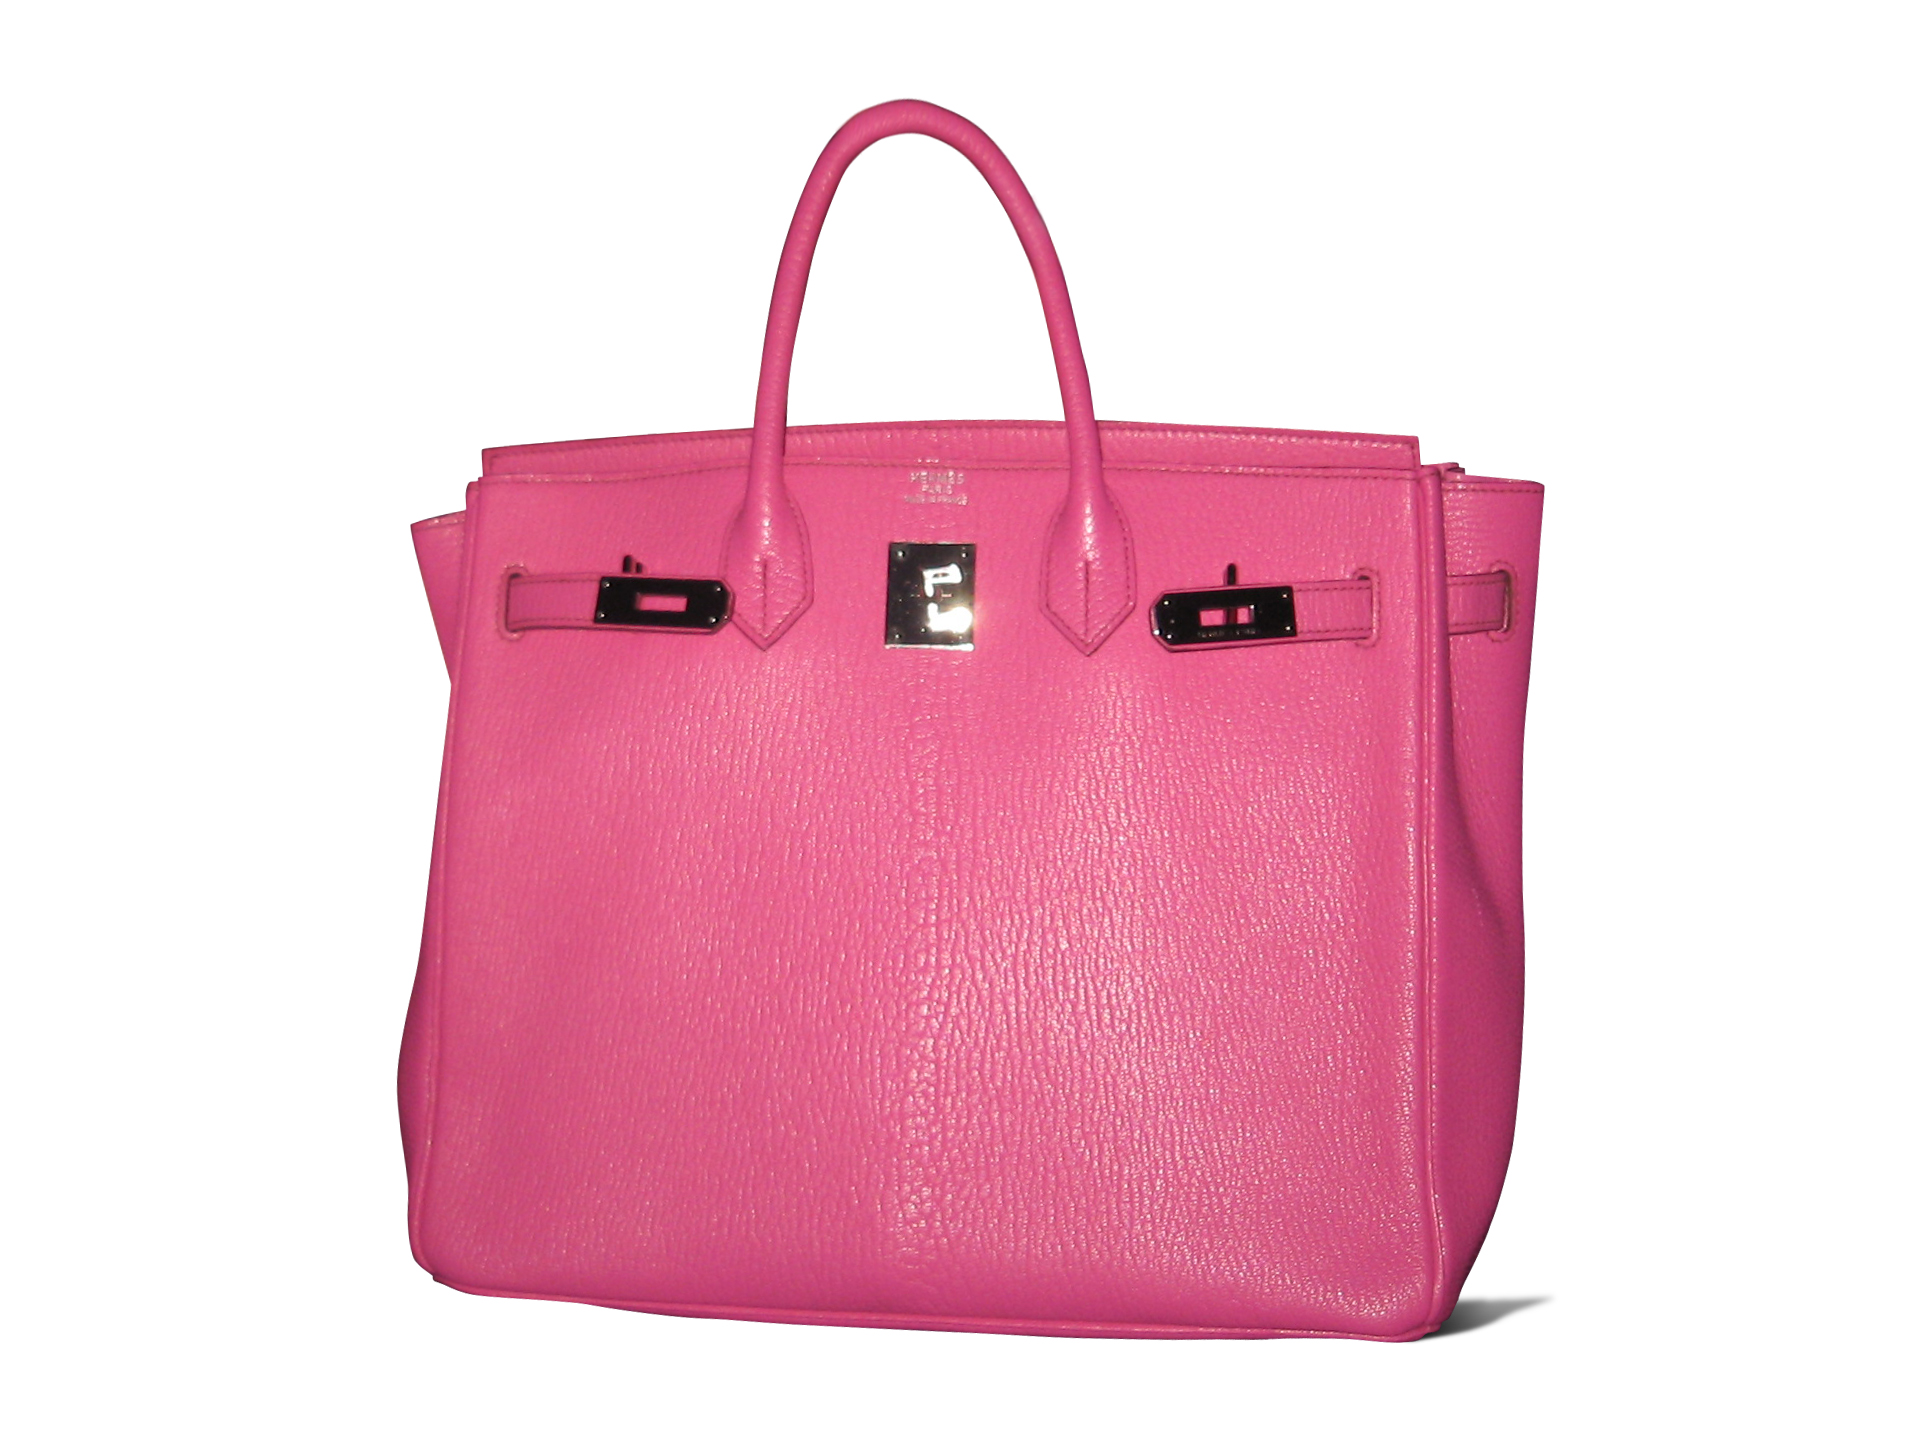 Birkin bag - Wikipedia, the free encyclopedia